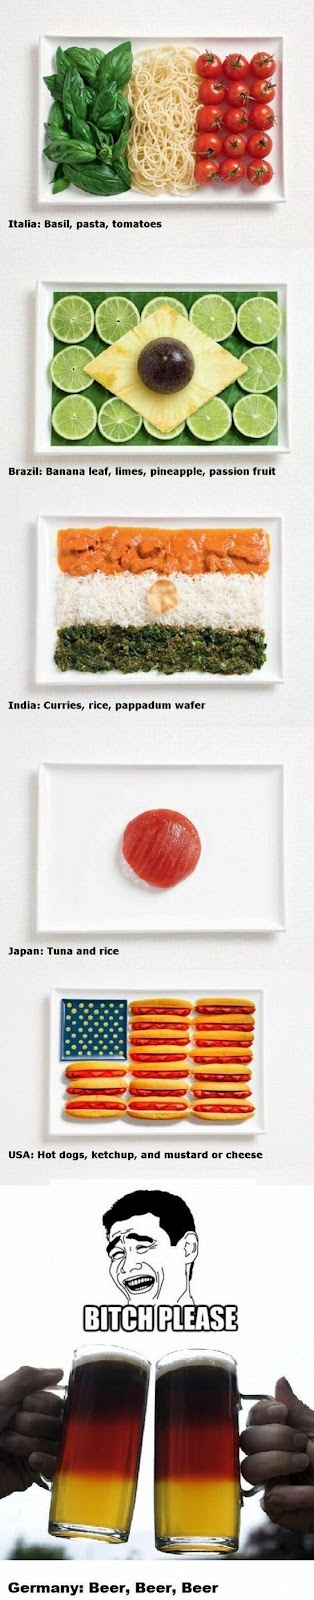 Different-Countries-explained-by-their-Food.